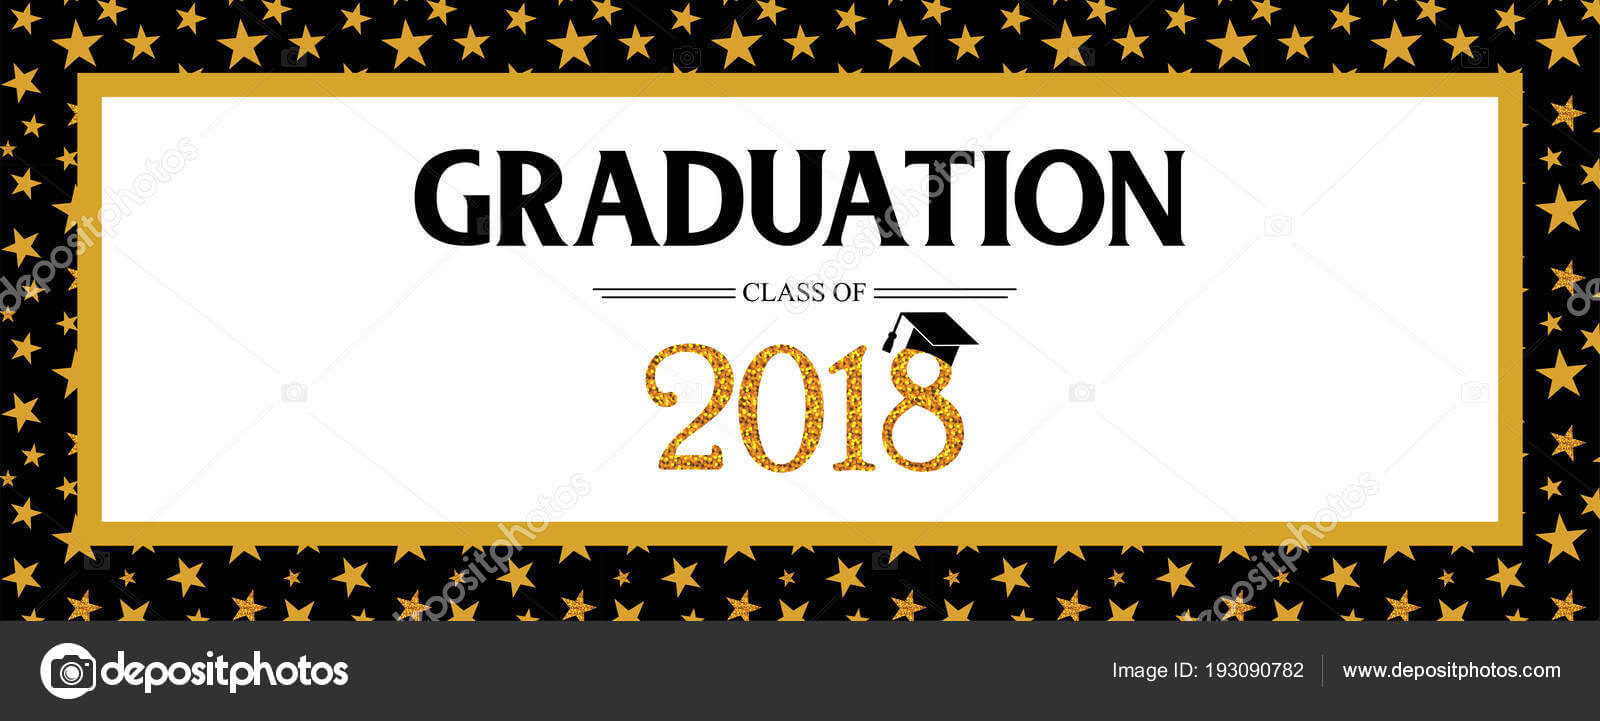 Graduation Banner Template | Graduation Class Of 2018 Pertaining To Graduation Banner Template